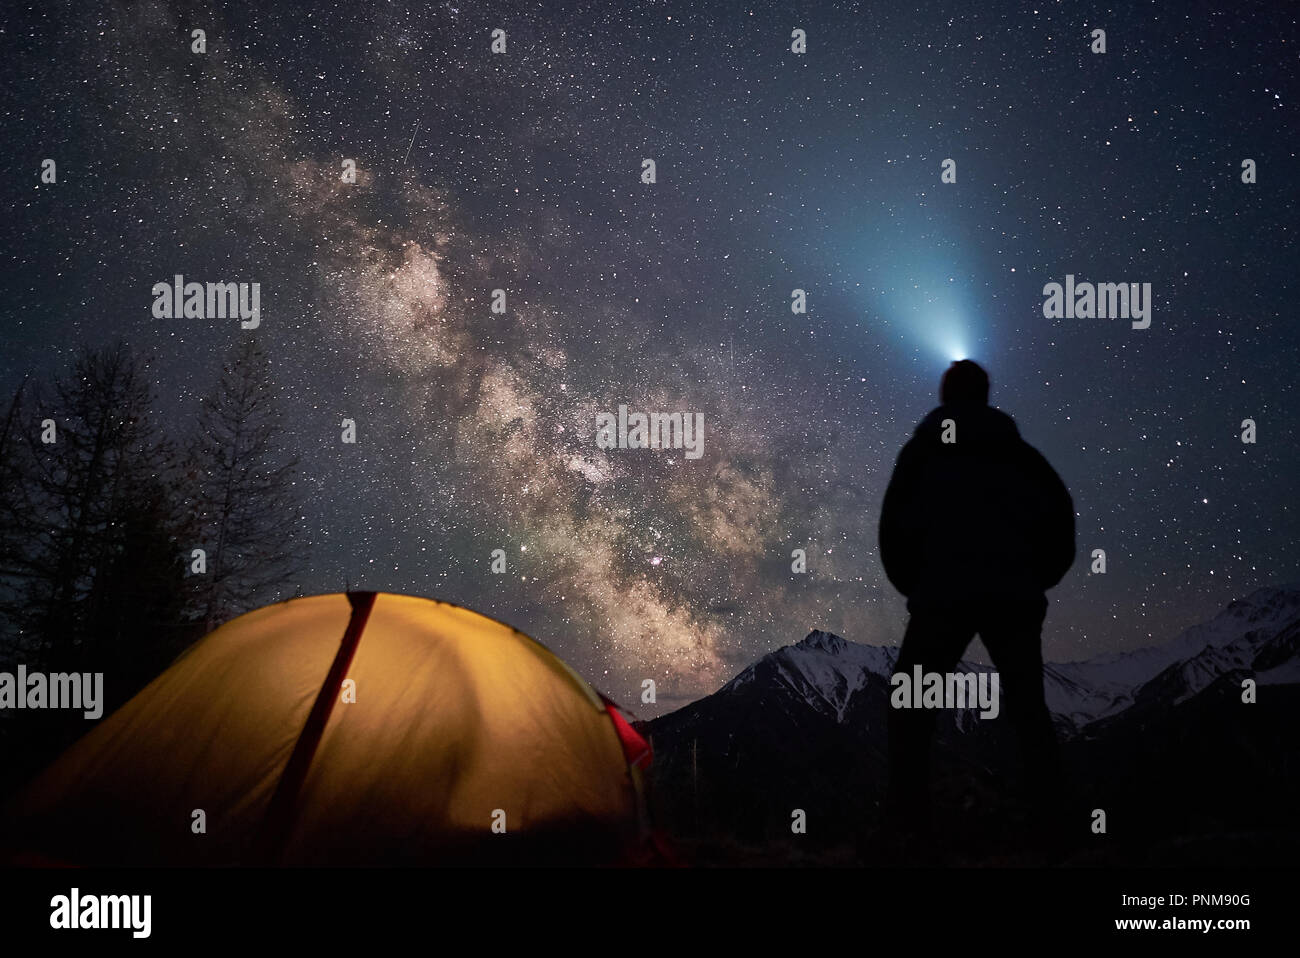 Man tourist with flashlight stands near his camp tent at night under a sky full of stars. - Stock Image